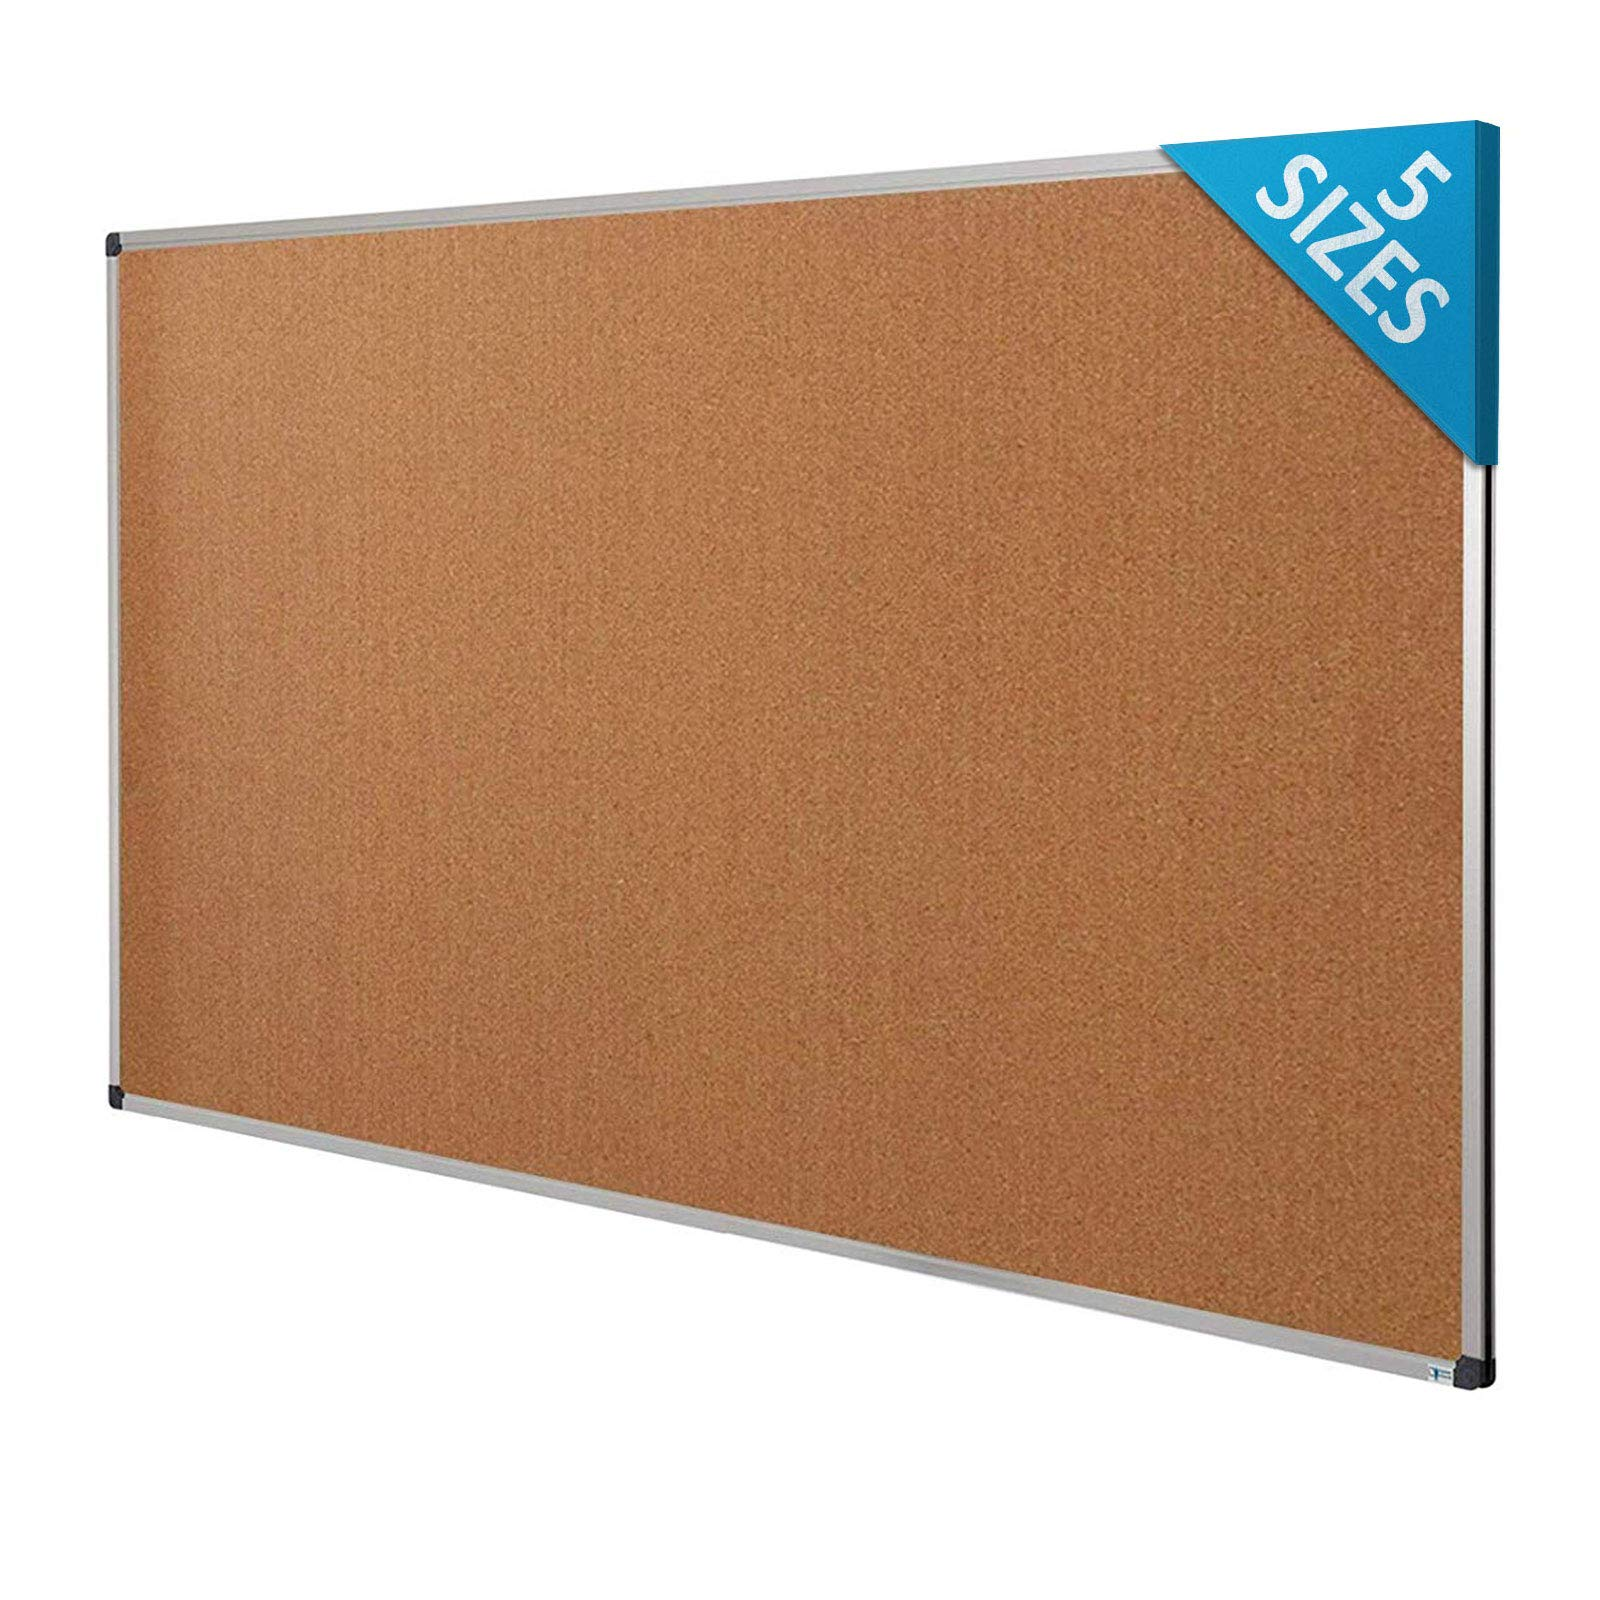 Cork Notice Pin Board | Aluminum Framed Memo Board for Office and Home Use | 5 Sizes Available - 36'' x 48''